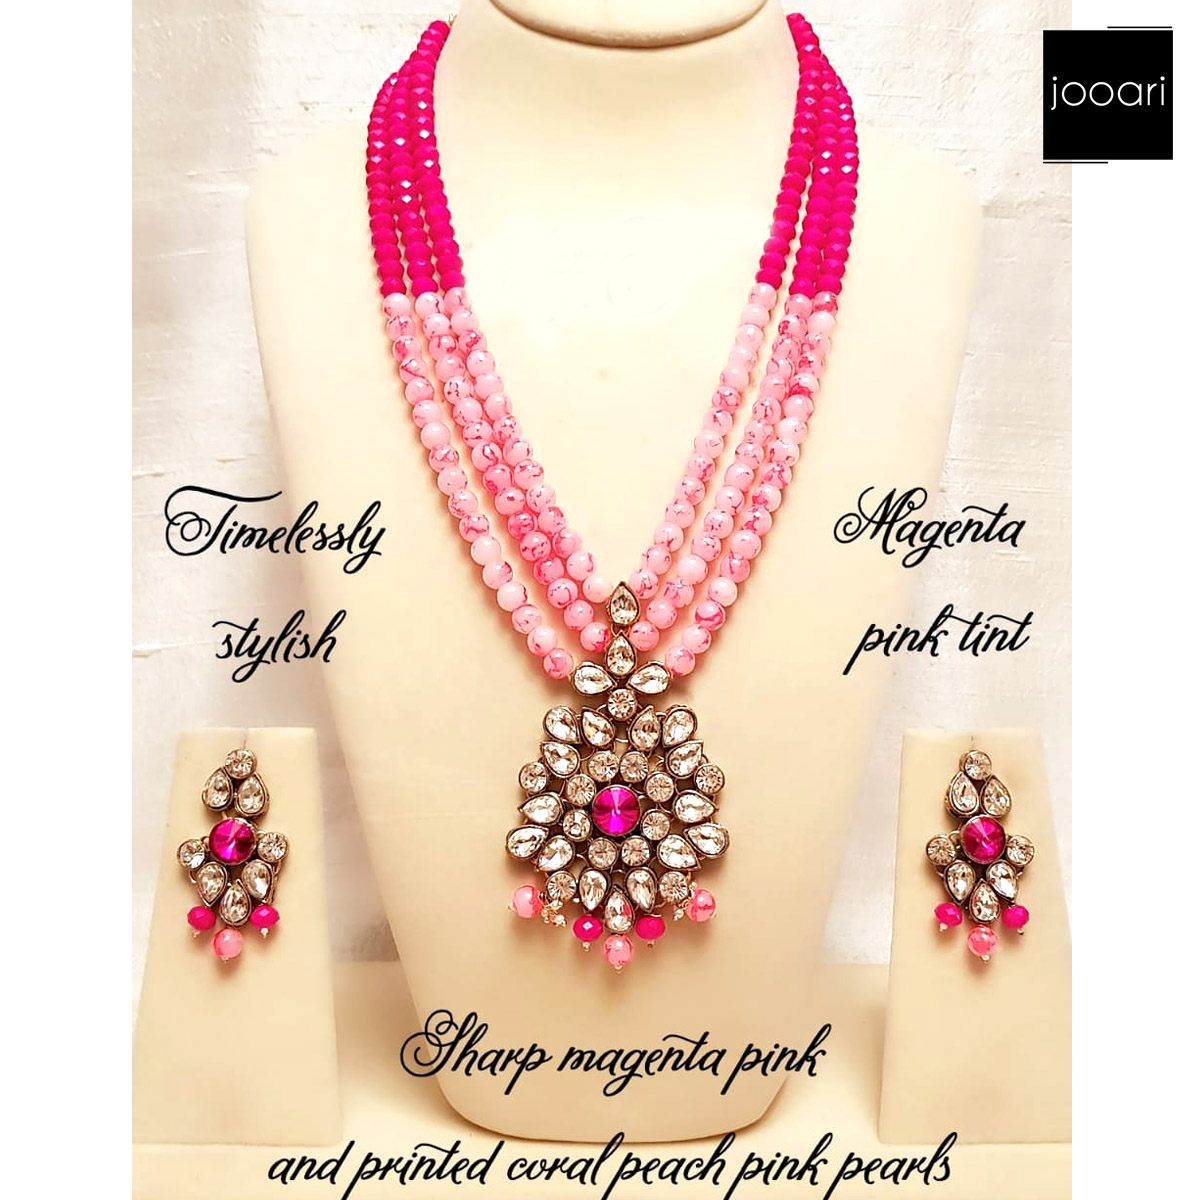 Magenta Pink Tint Coral Peach Pearls Pendant for Women Traditional Look